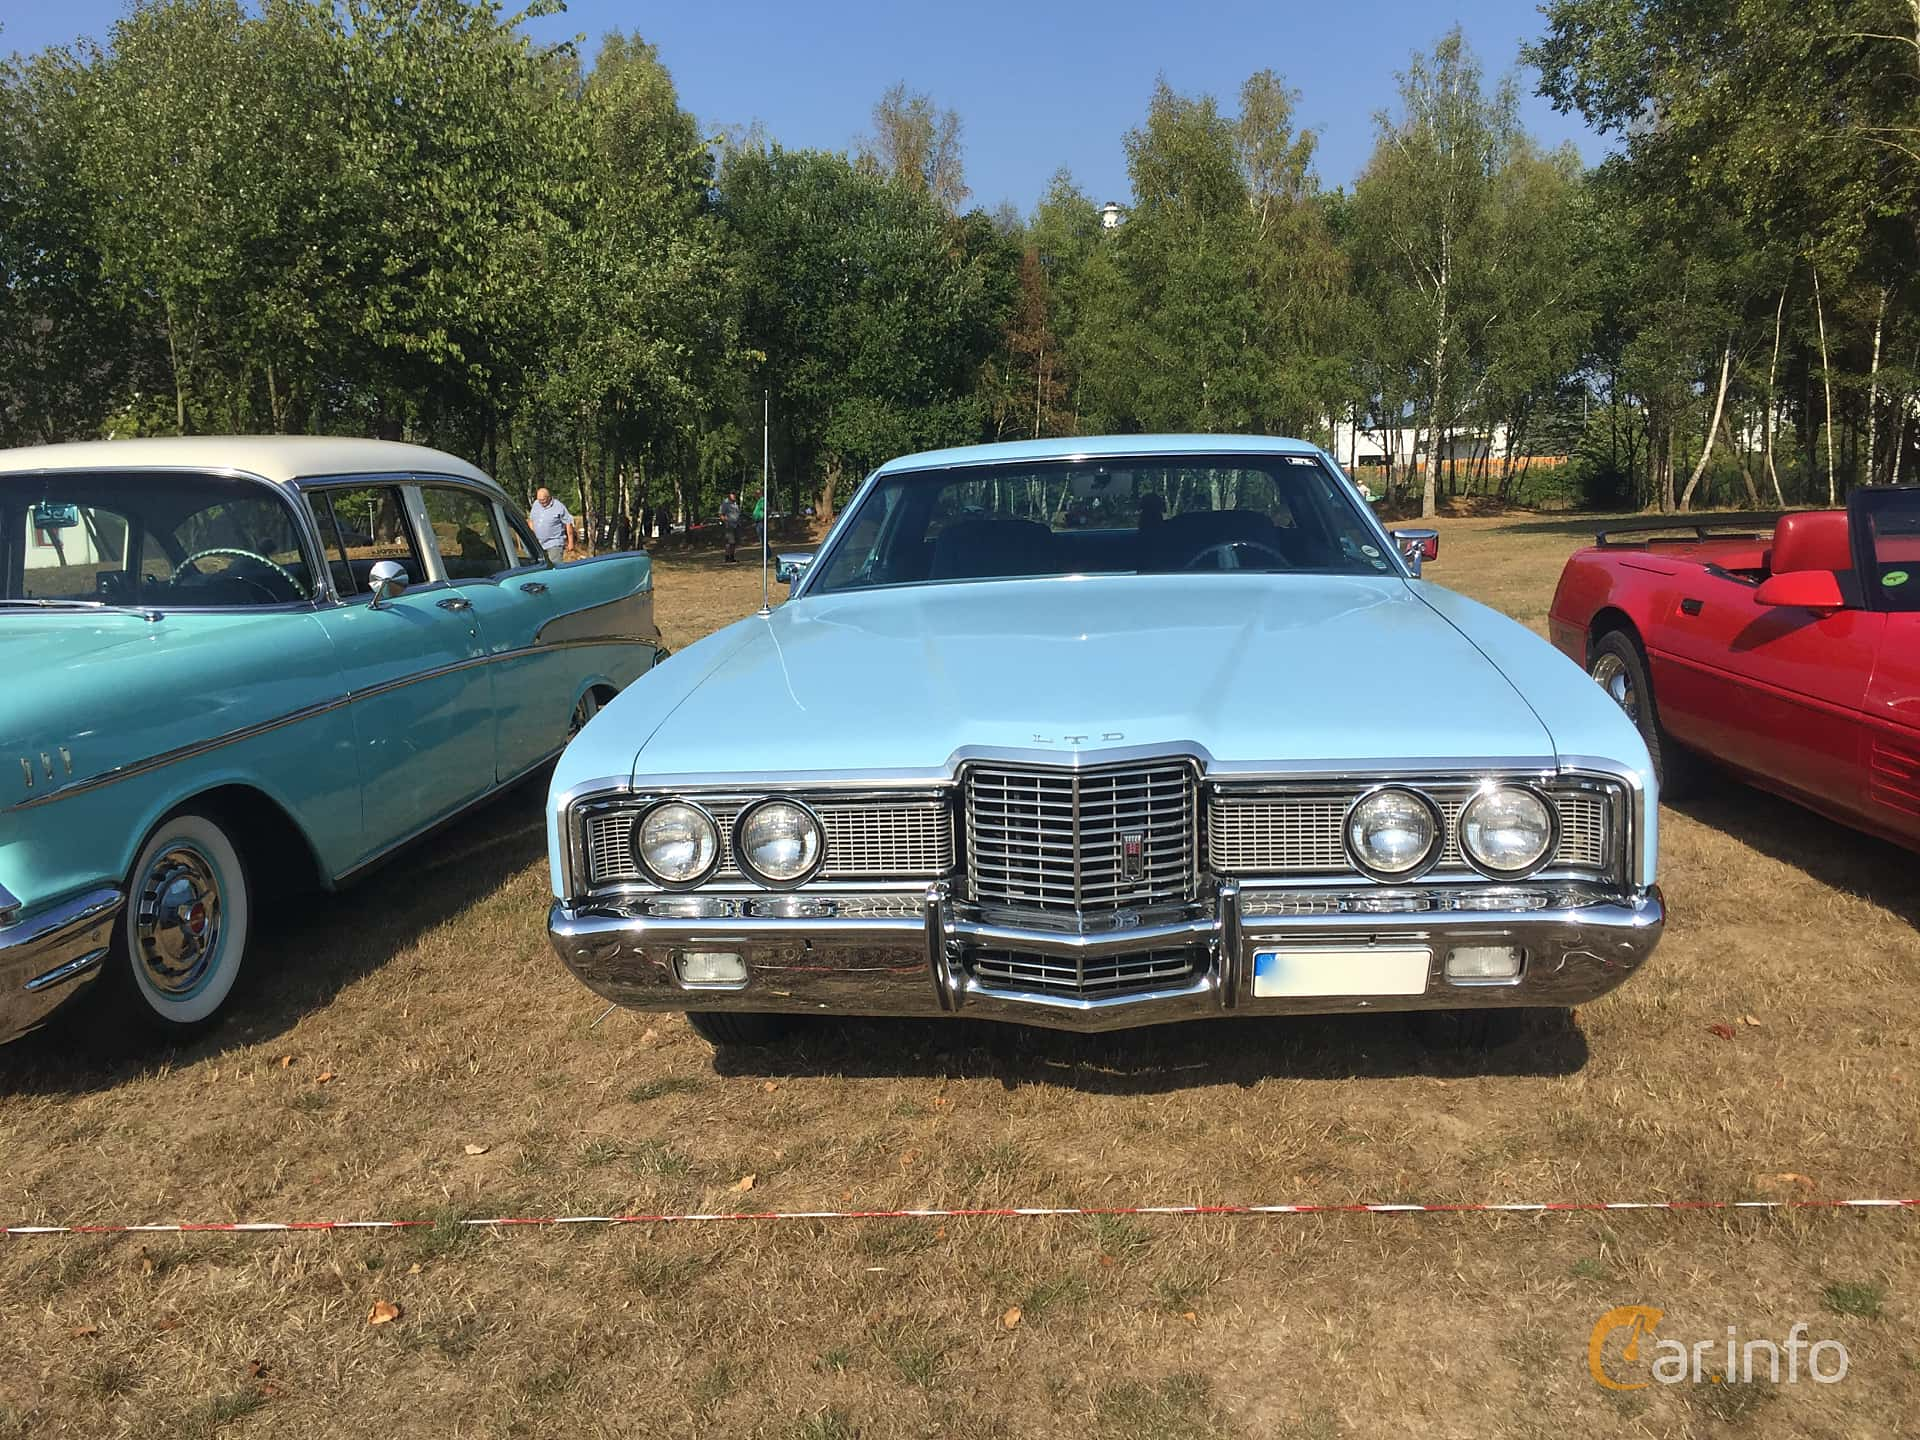 Front  of Ford LTD 2-door Hardtop 7.0 V8 Automatic, 211ps, 1972 at Eddys bilträff Augusti 2018